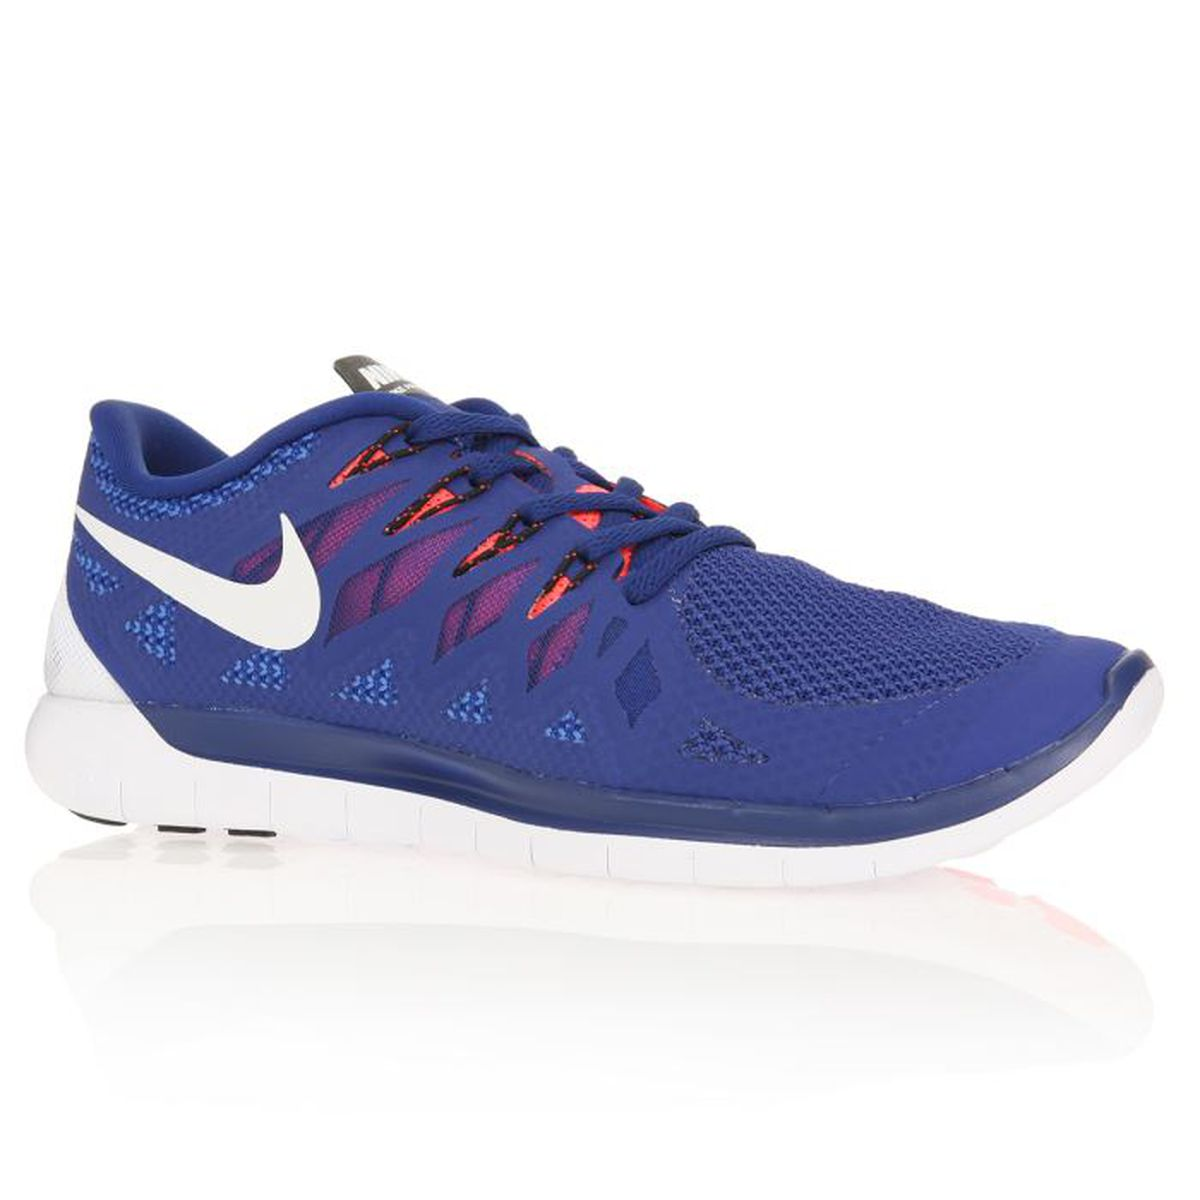 low priced 676ba 1319b CHAUSSURES DE RUNNING NIKE Chaussures de running Free Run 5.0 Homme